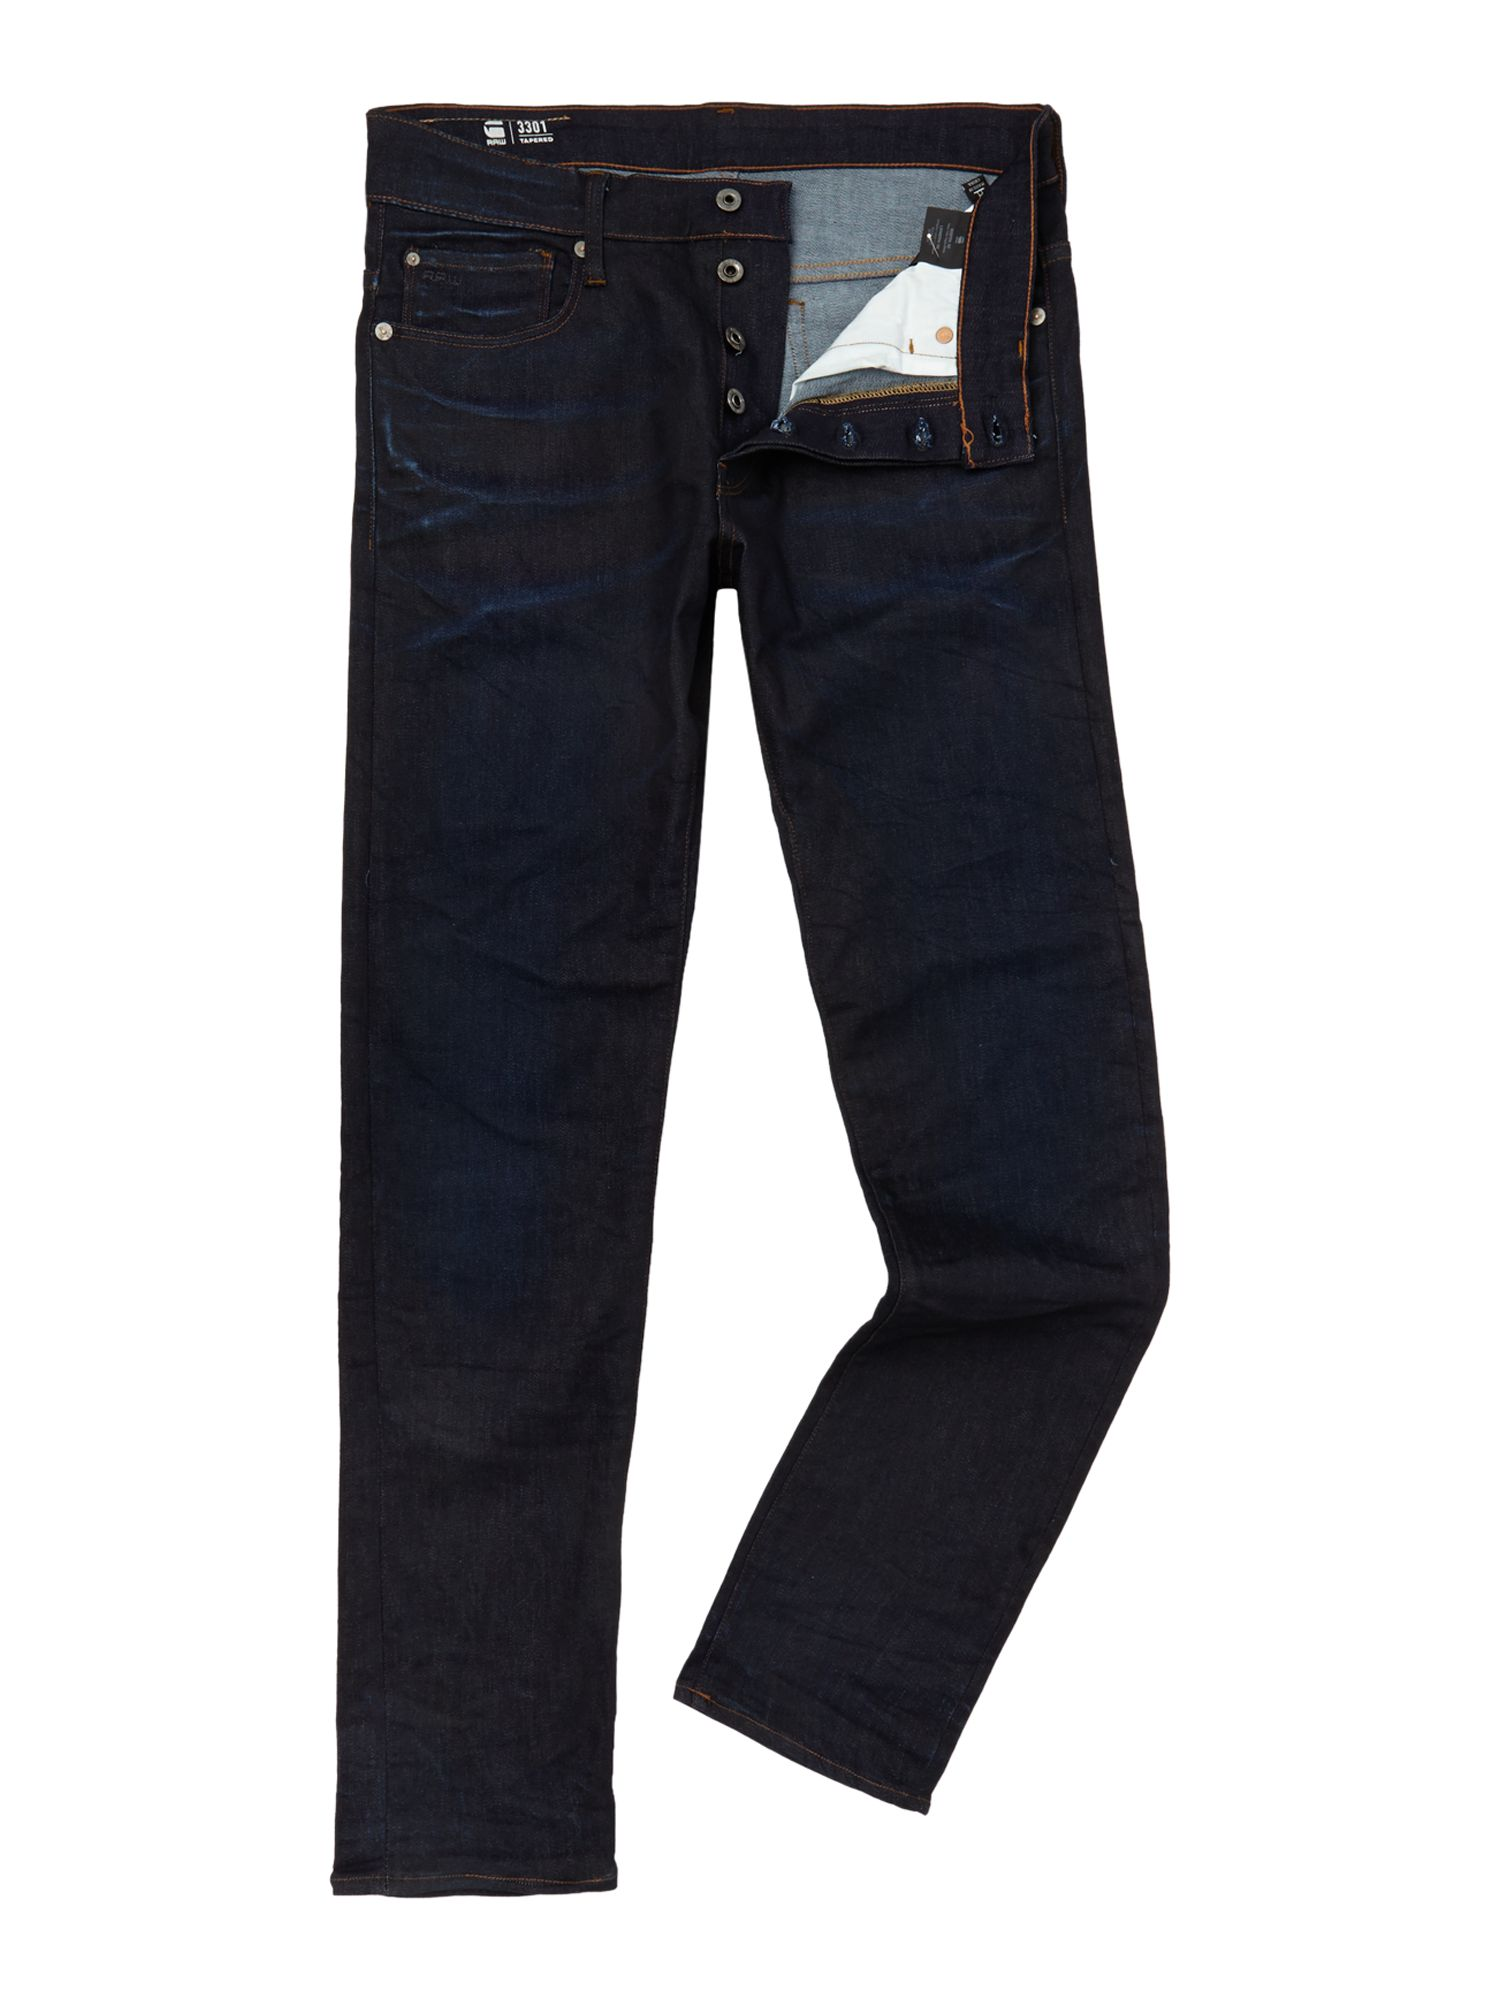 G-Star 51003 3301 Tapered Jeans